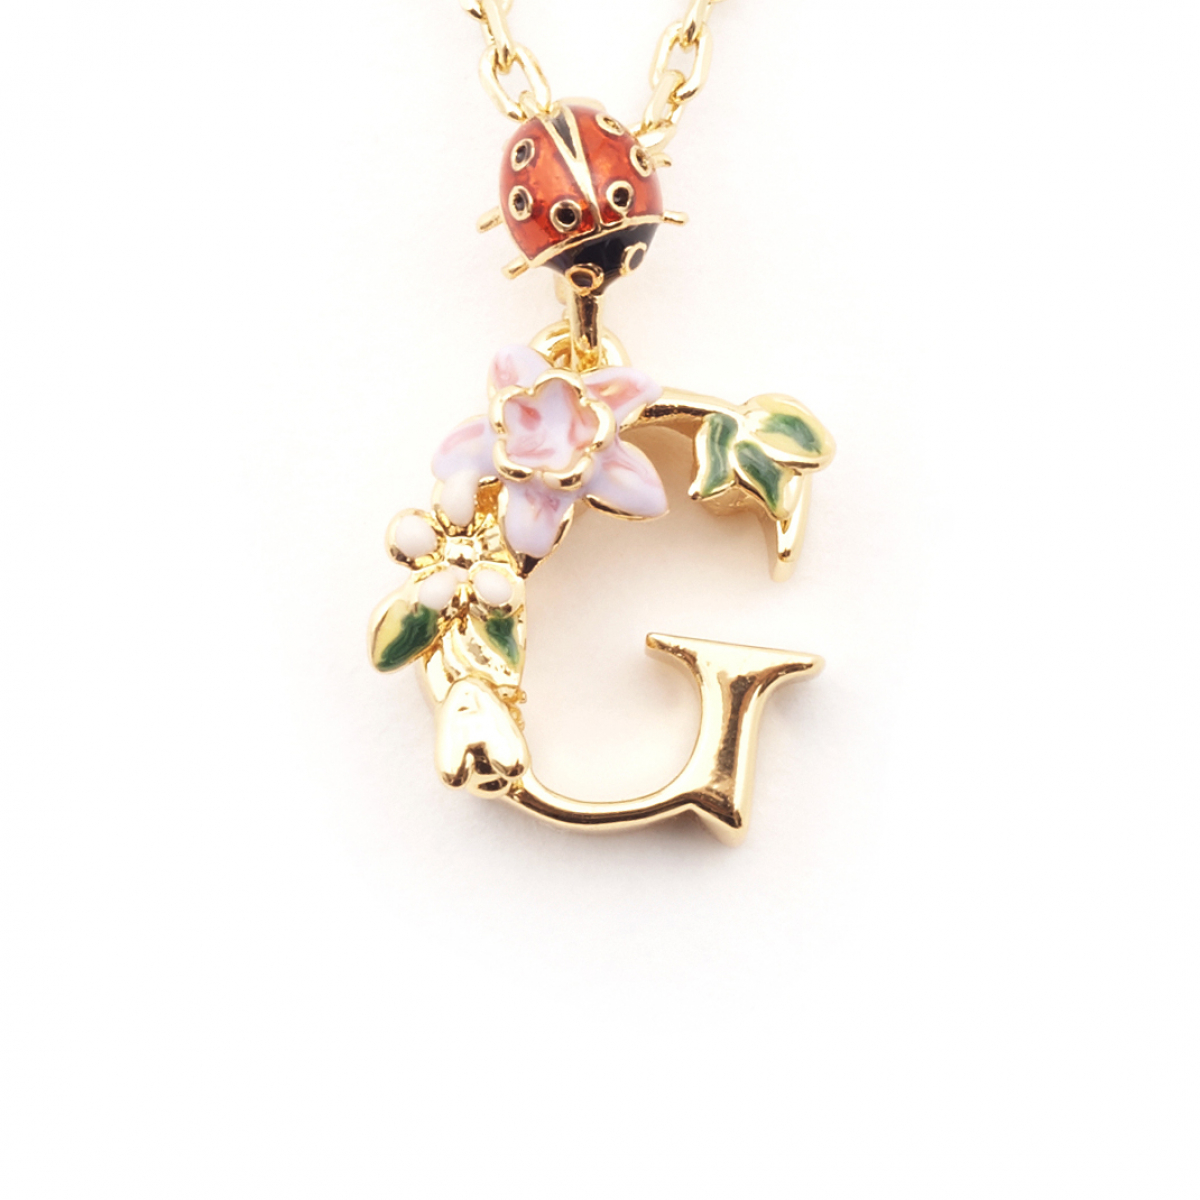 Floral Initial Pendant - G